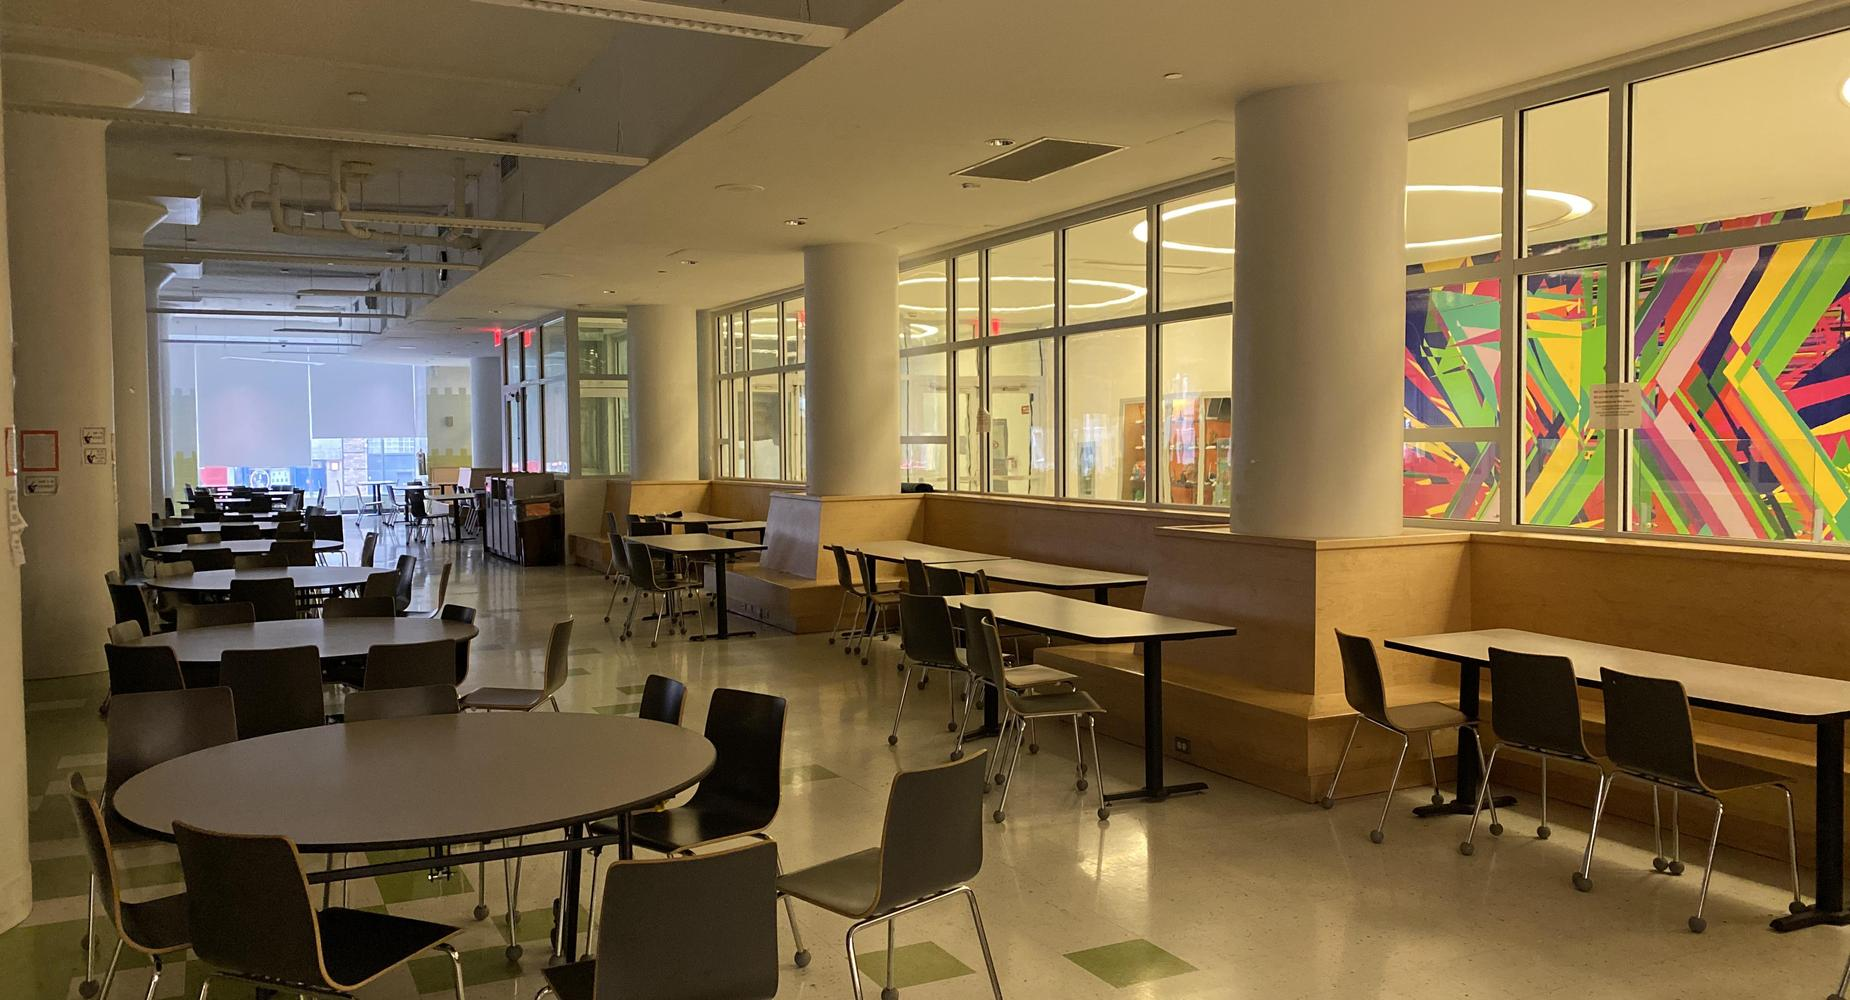 Beacon Cafeteria with the lights turned off